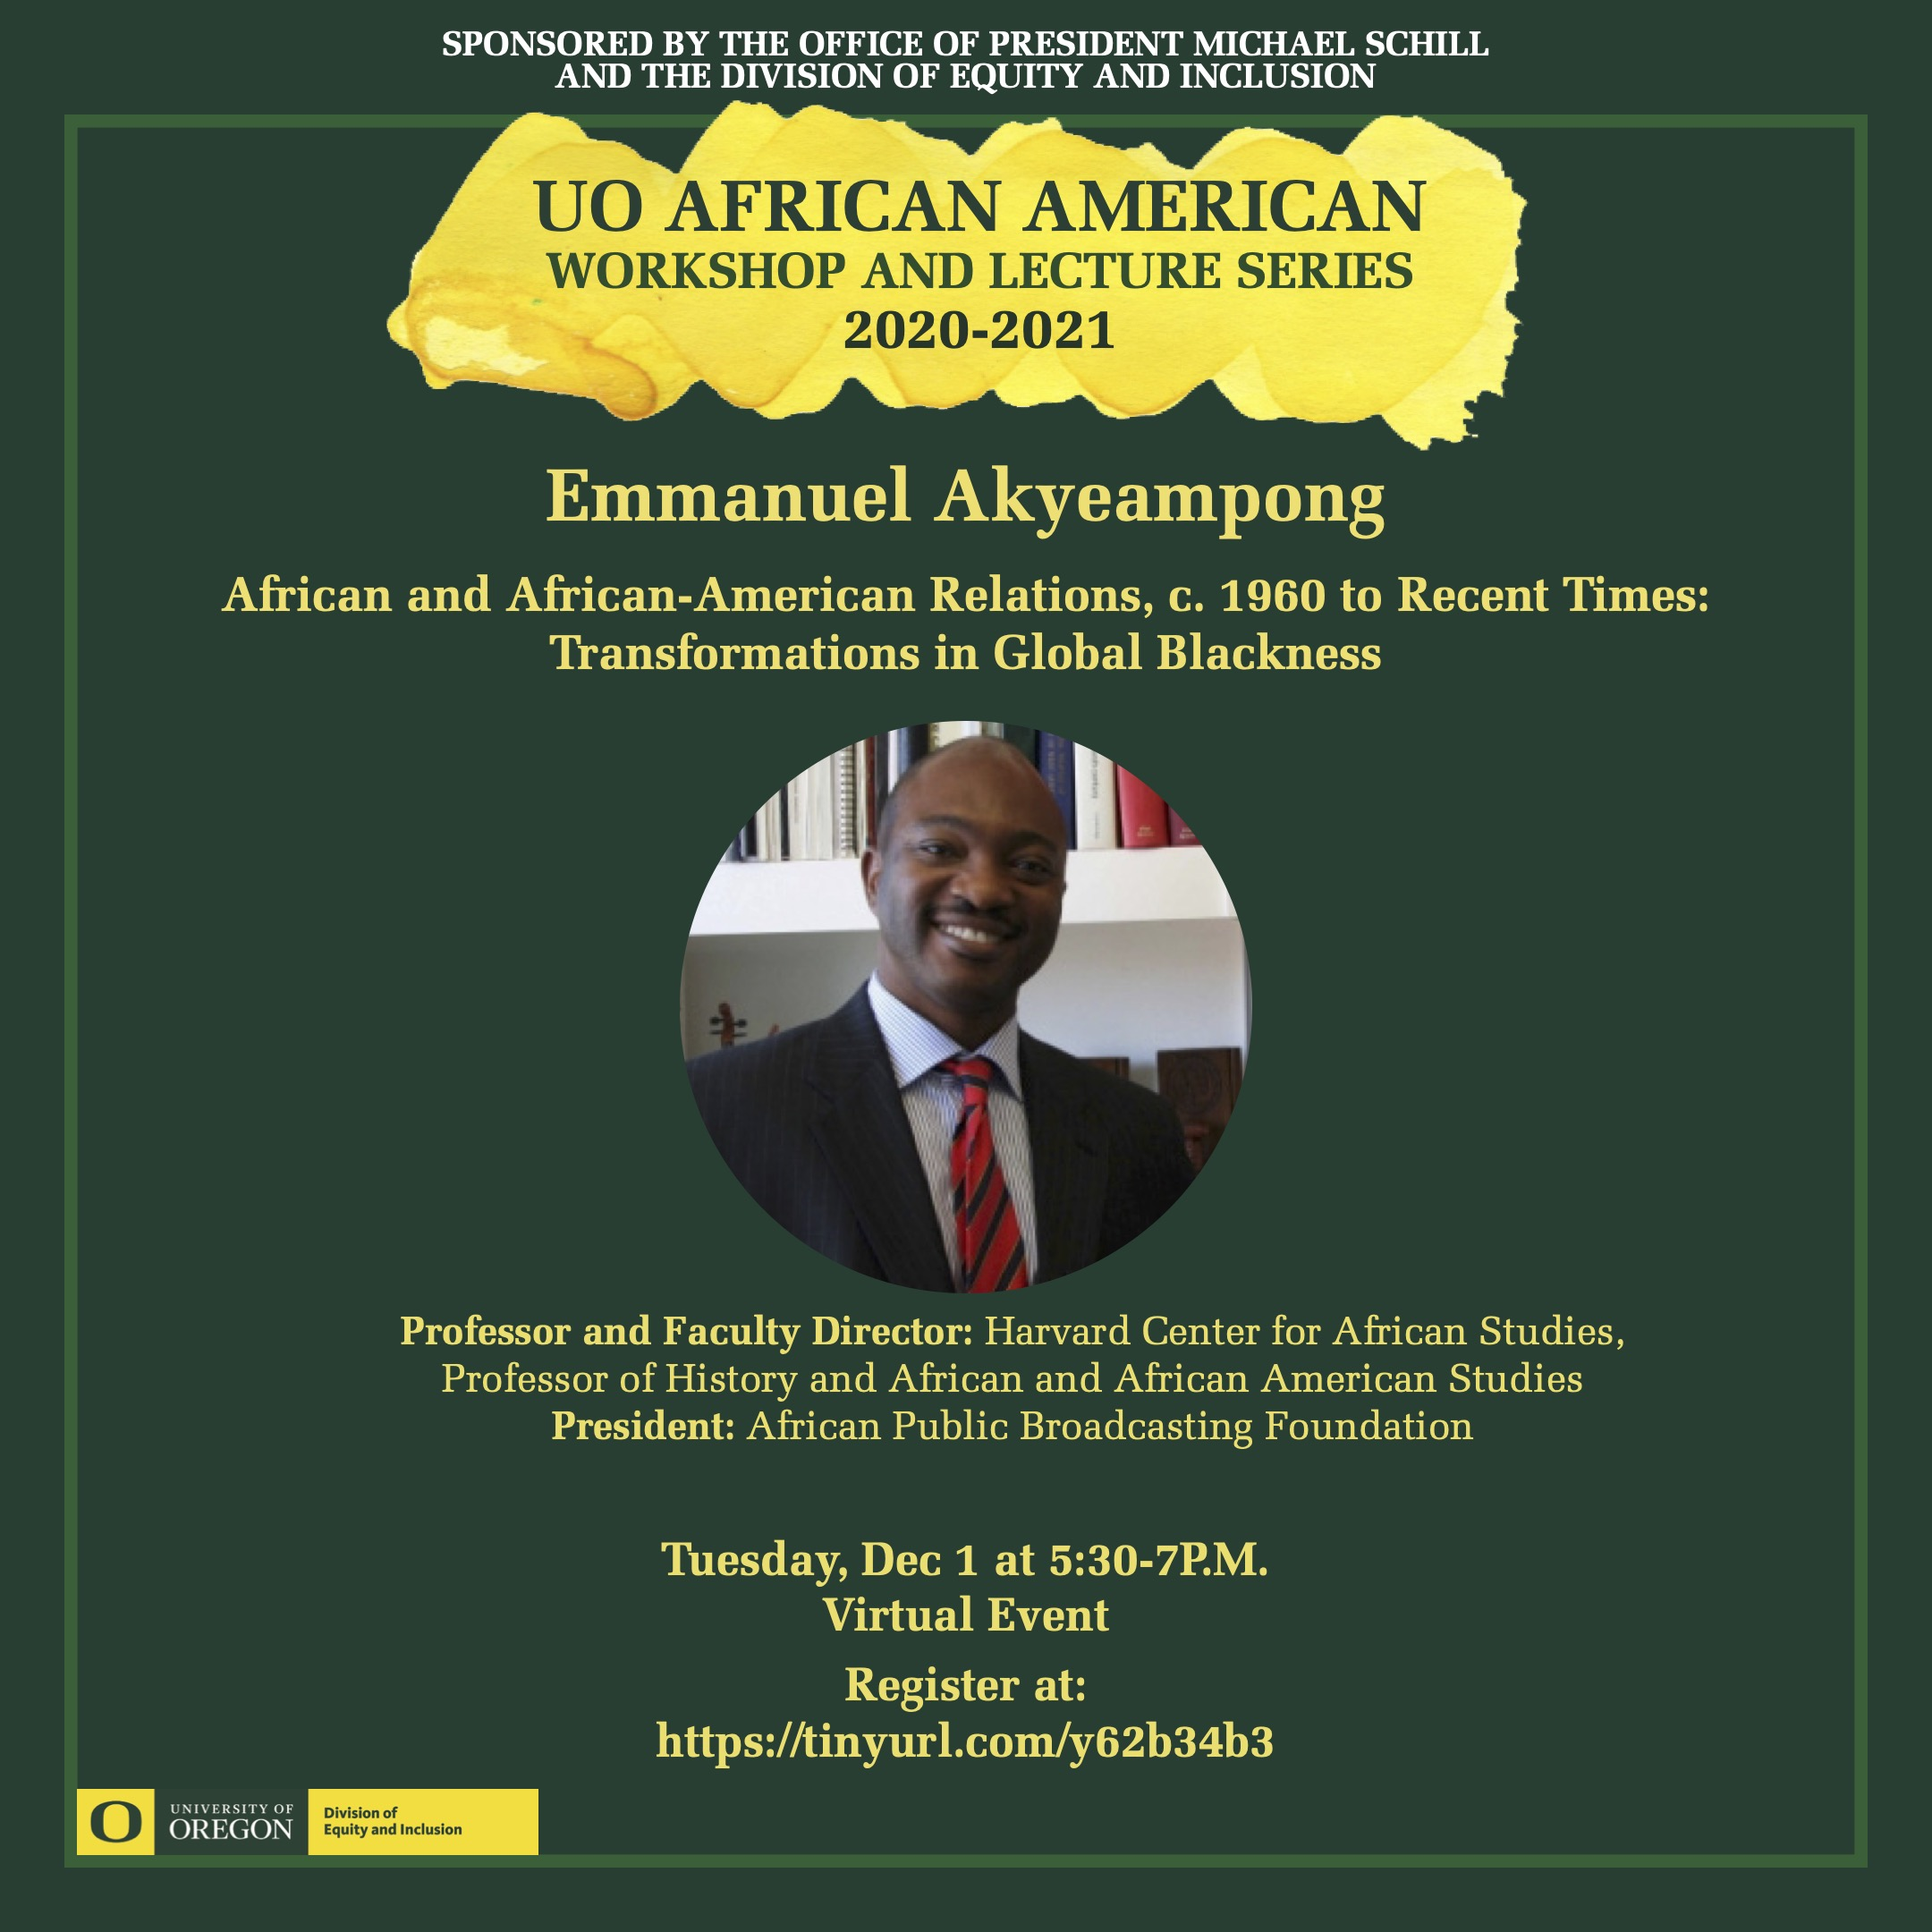 Emmanuel_akyeampong - Tuesday, Dec 1 at 5:30-7P.M. Virtual Event